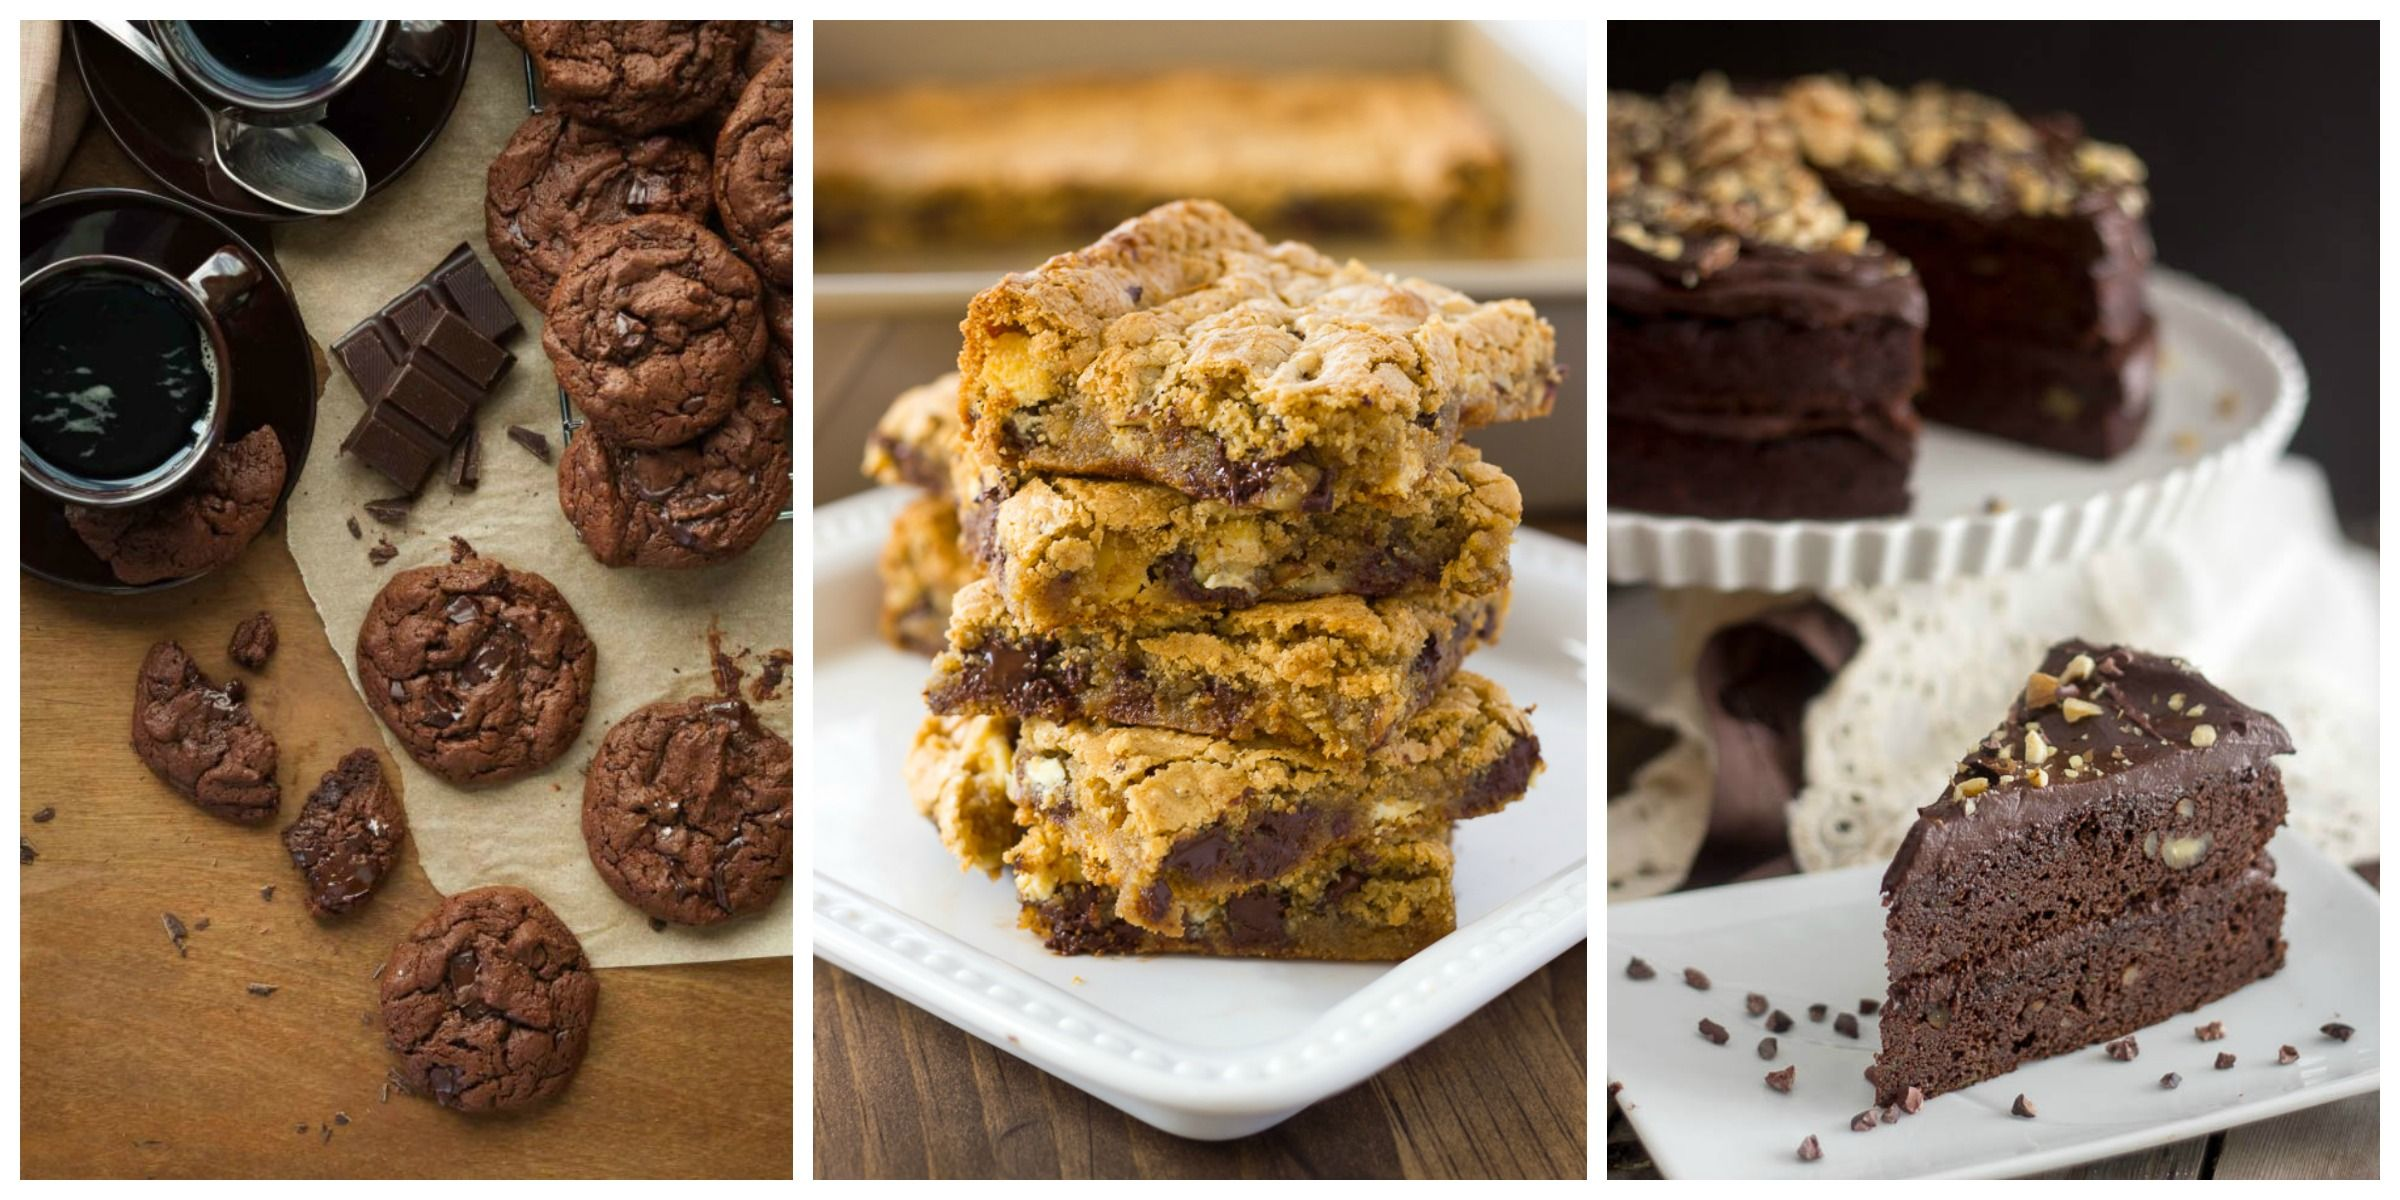 15 Almond Flour Dessert Recipes To Indulge In On Your Diet Days Off